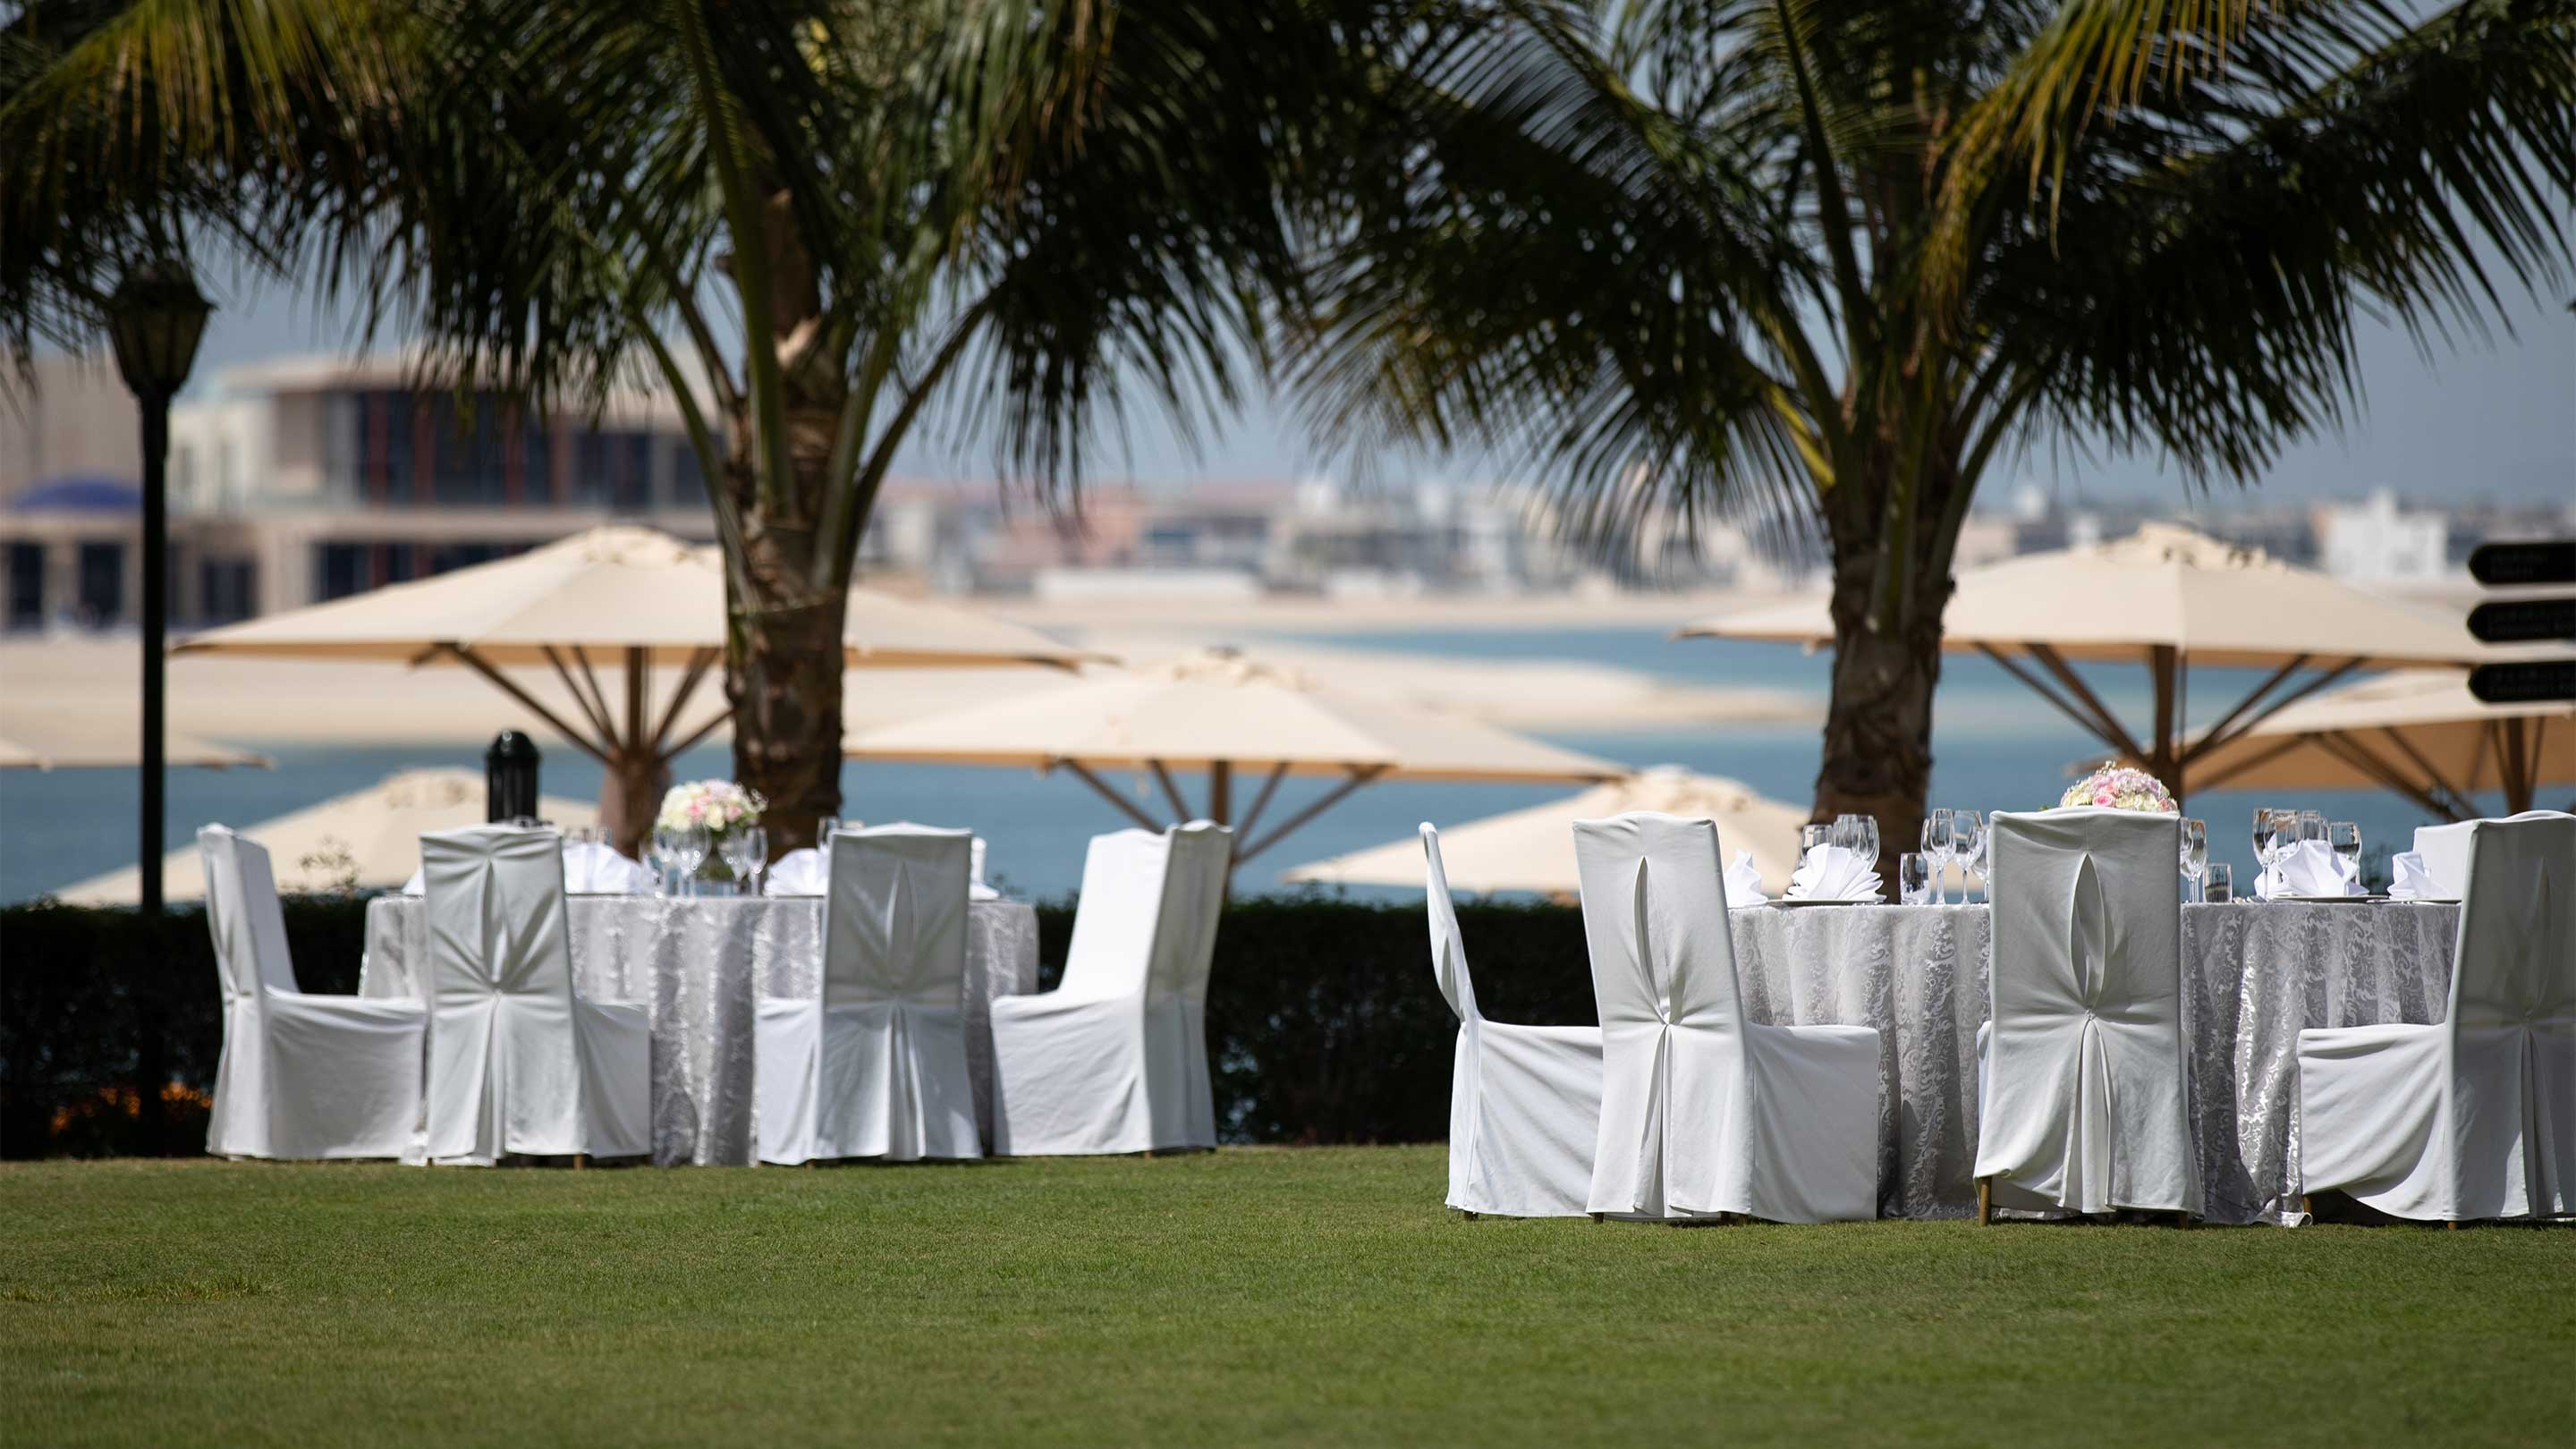 https://cdn.jumeirah.com/-/mediadh/DH/Hospitality/Jumeirah/Occasion/Dubai/Zabeel-Saray/Beach-wedding/16-9_Jumeirah-Zabeel-Saray-Events-Exterior-table.jpg?h=1620&w=2880&hash=2D57077A5FD1C9CC7999A173AB09A467